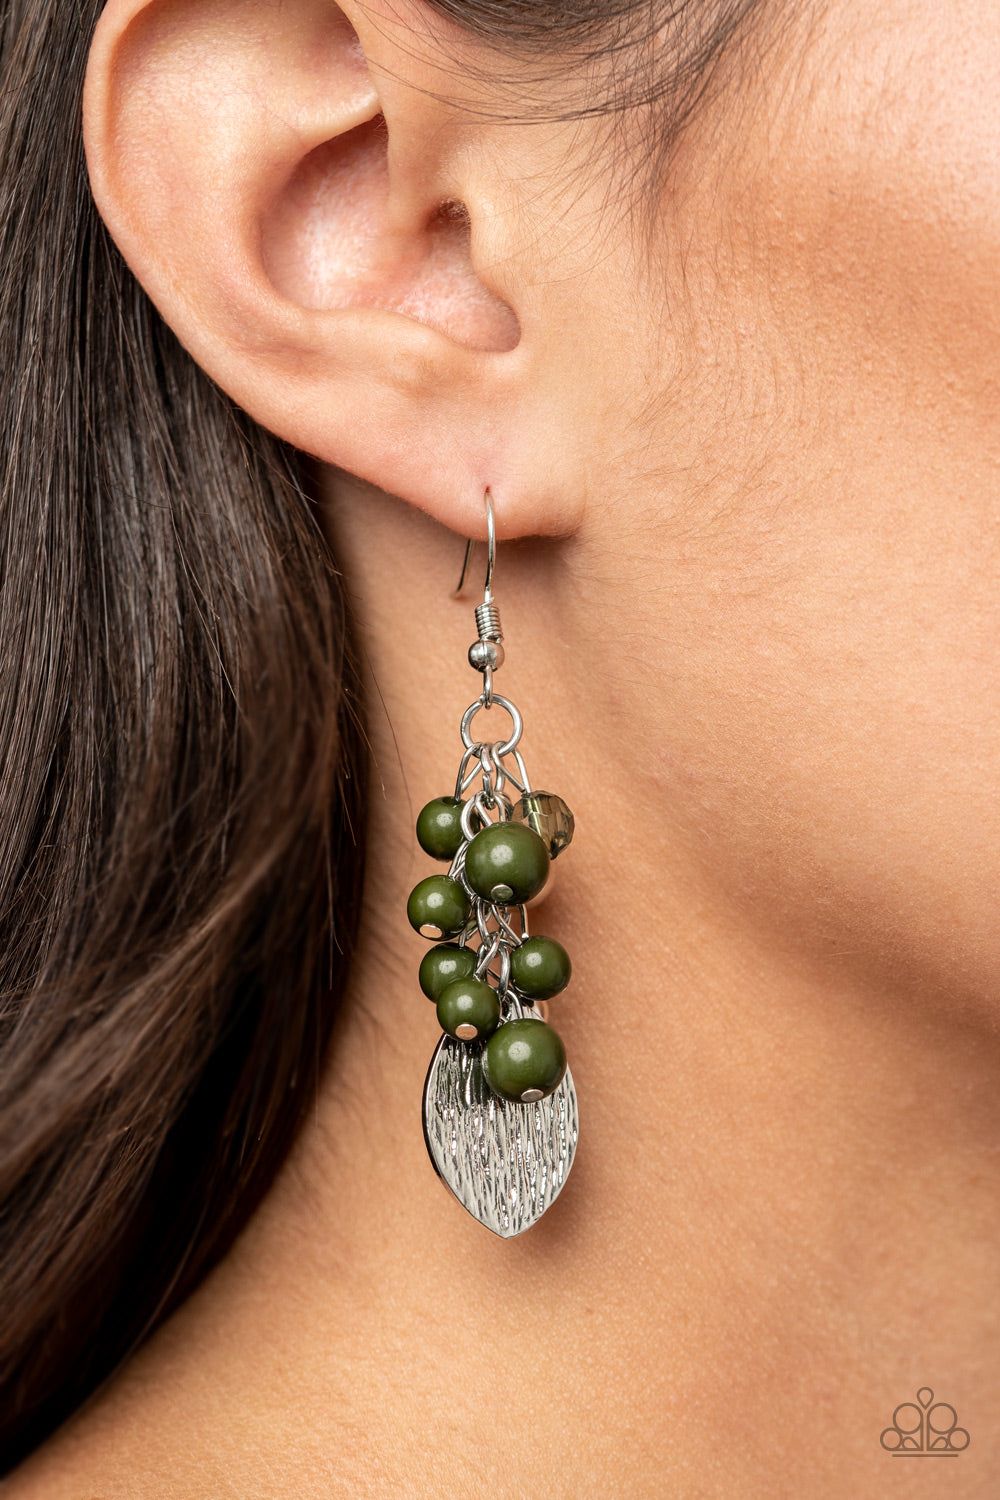 Paparazzi Jewelry & Accessories - Fruity Finesse - Green Earrings. Bling By Titia Boutique